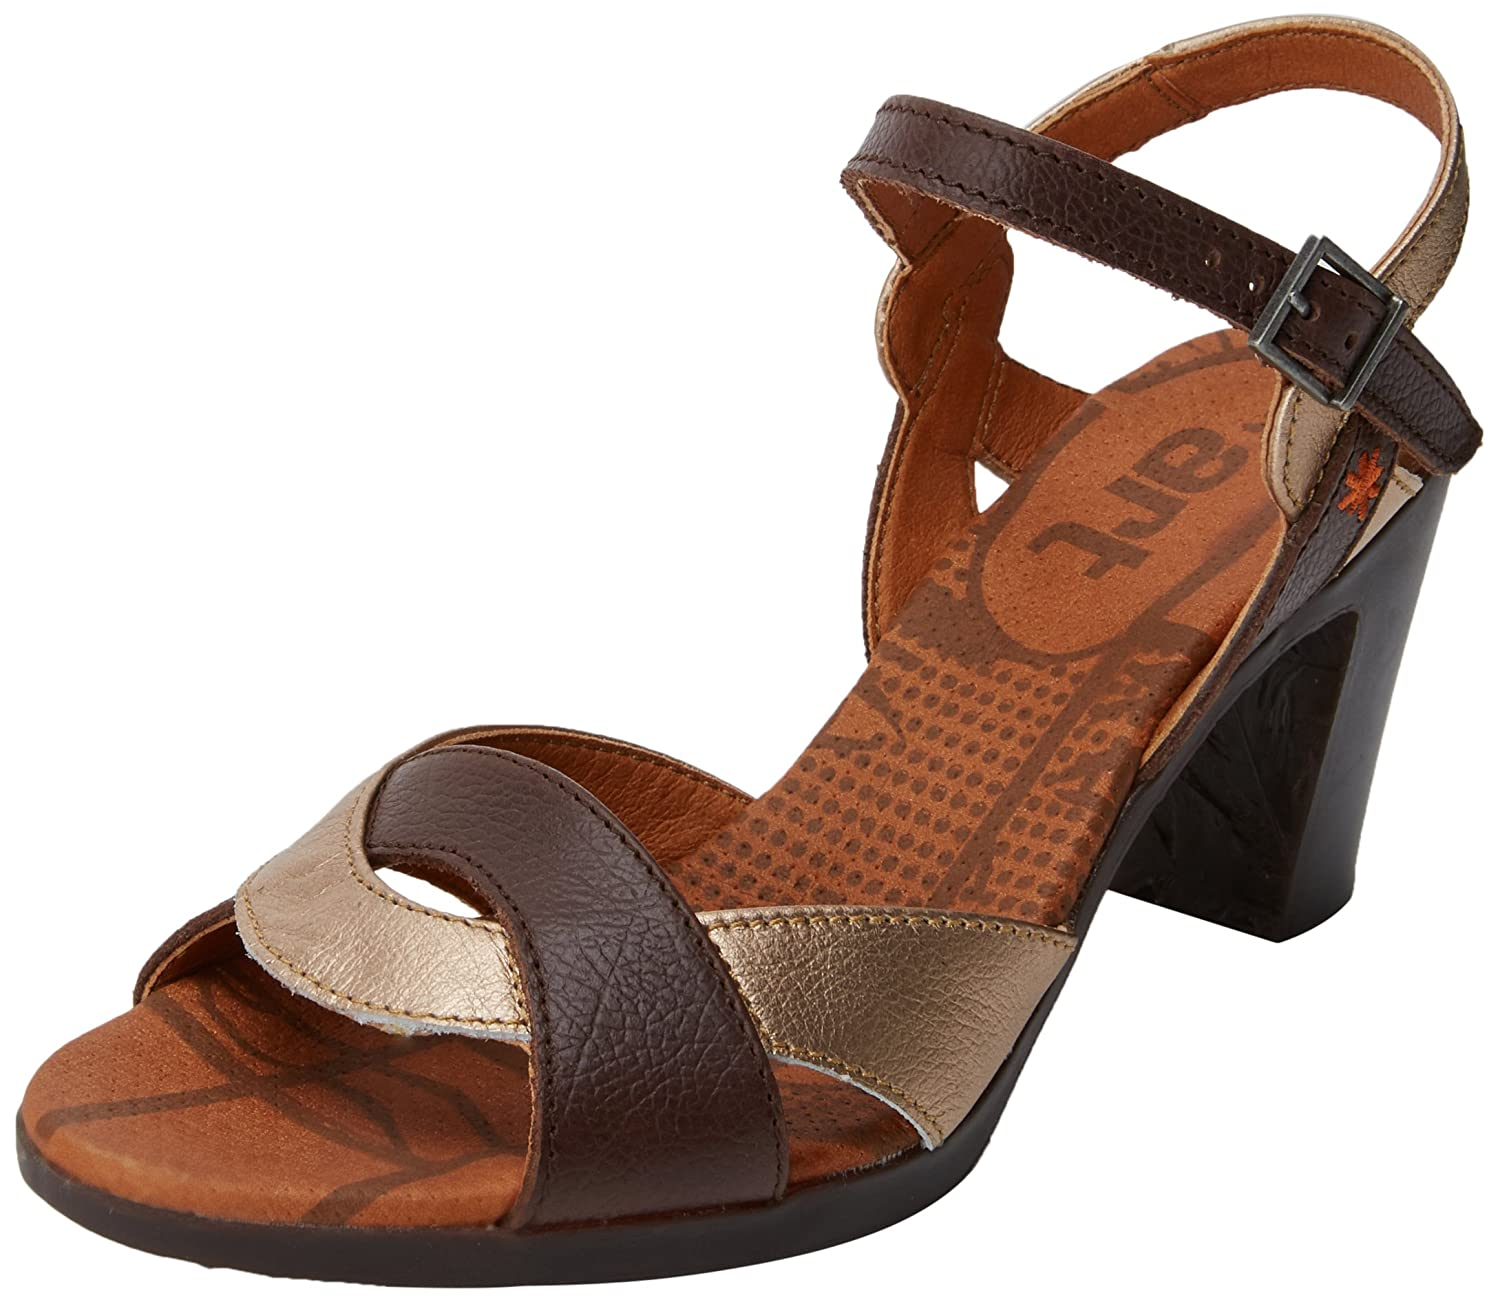 Art Memphis 0279 Memphis Marron Rio, Sandales Rio, Bout Ouvert Femme Marron (Brown) 3618a81 - boatplans.space